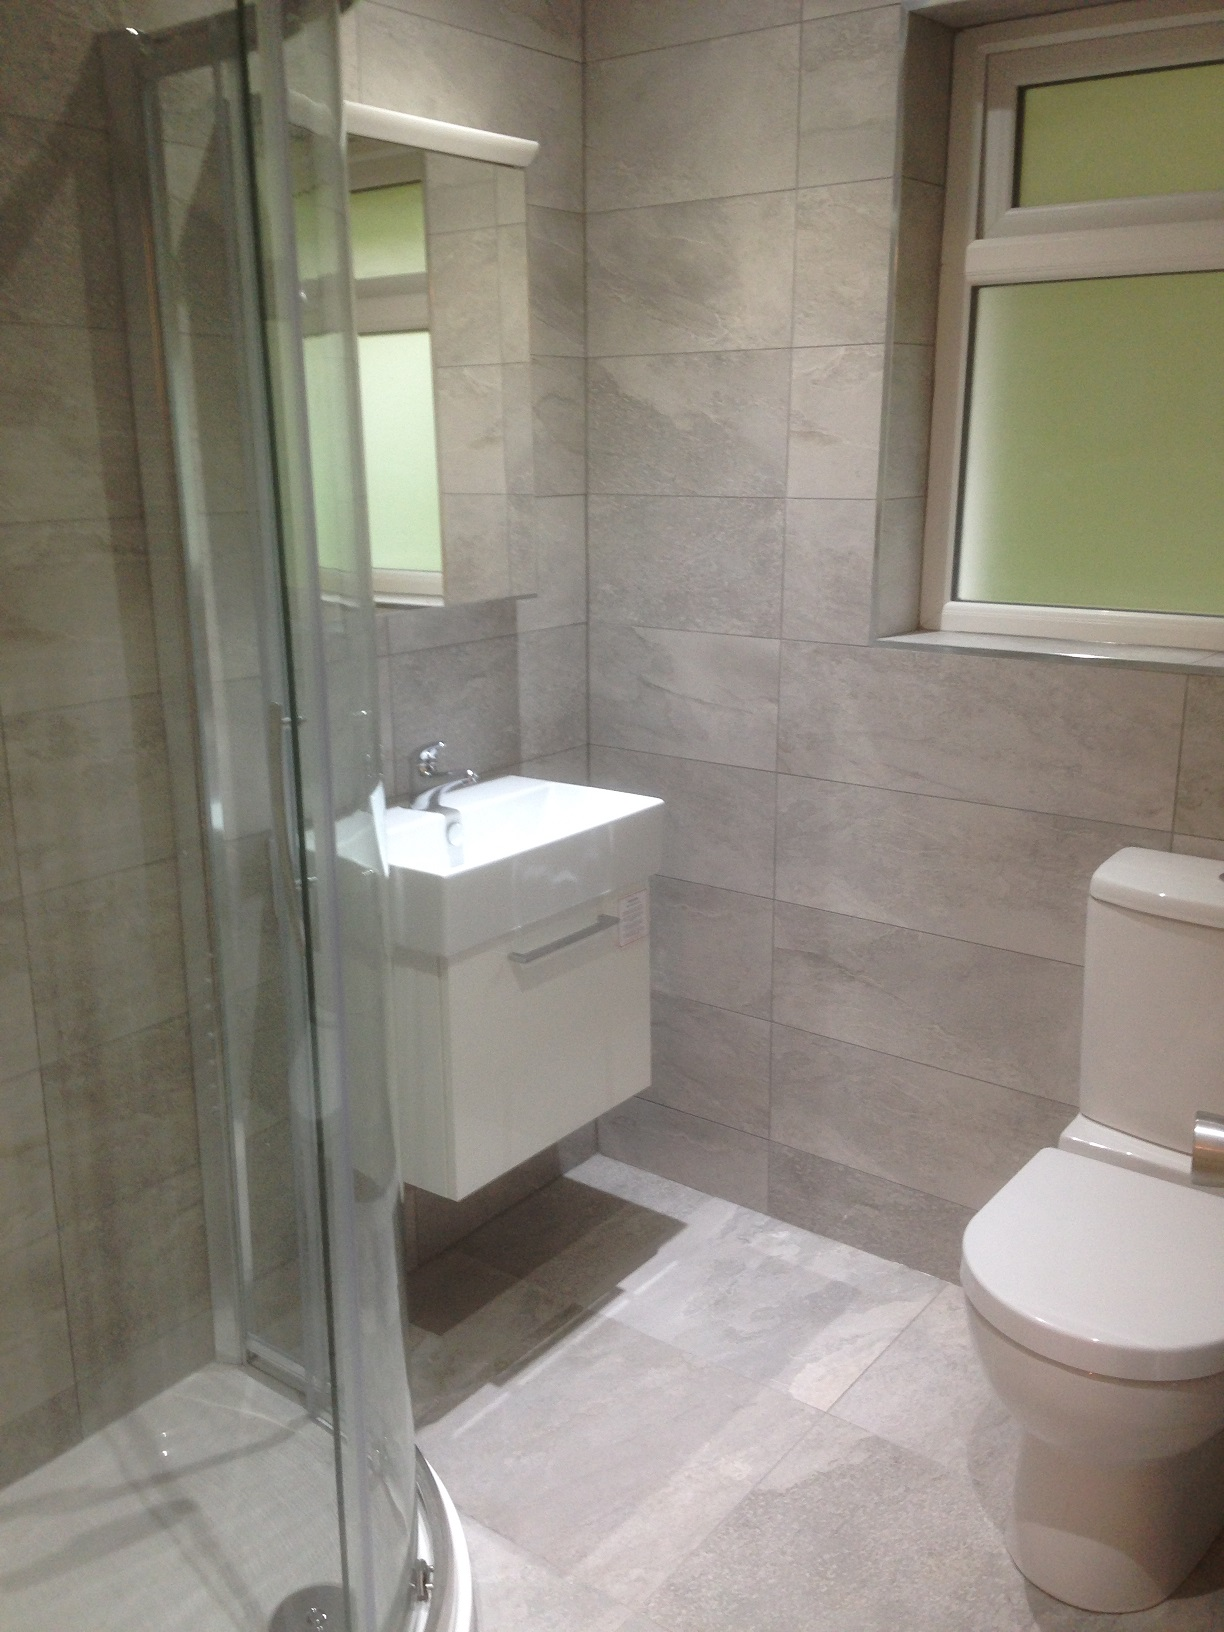 Bathroom & wc refurb – Bangor